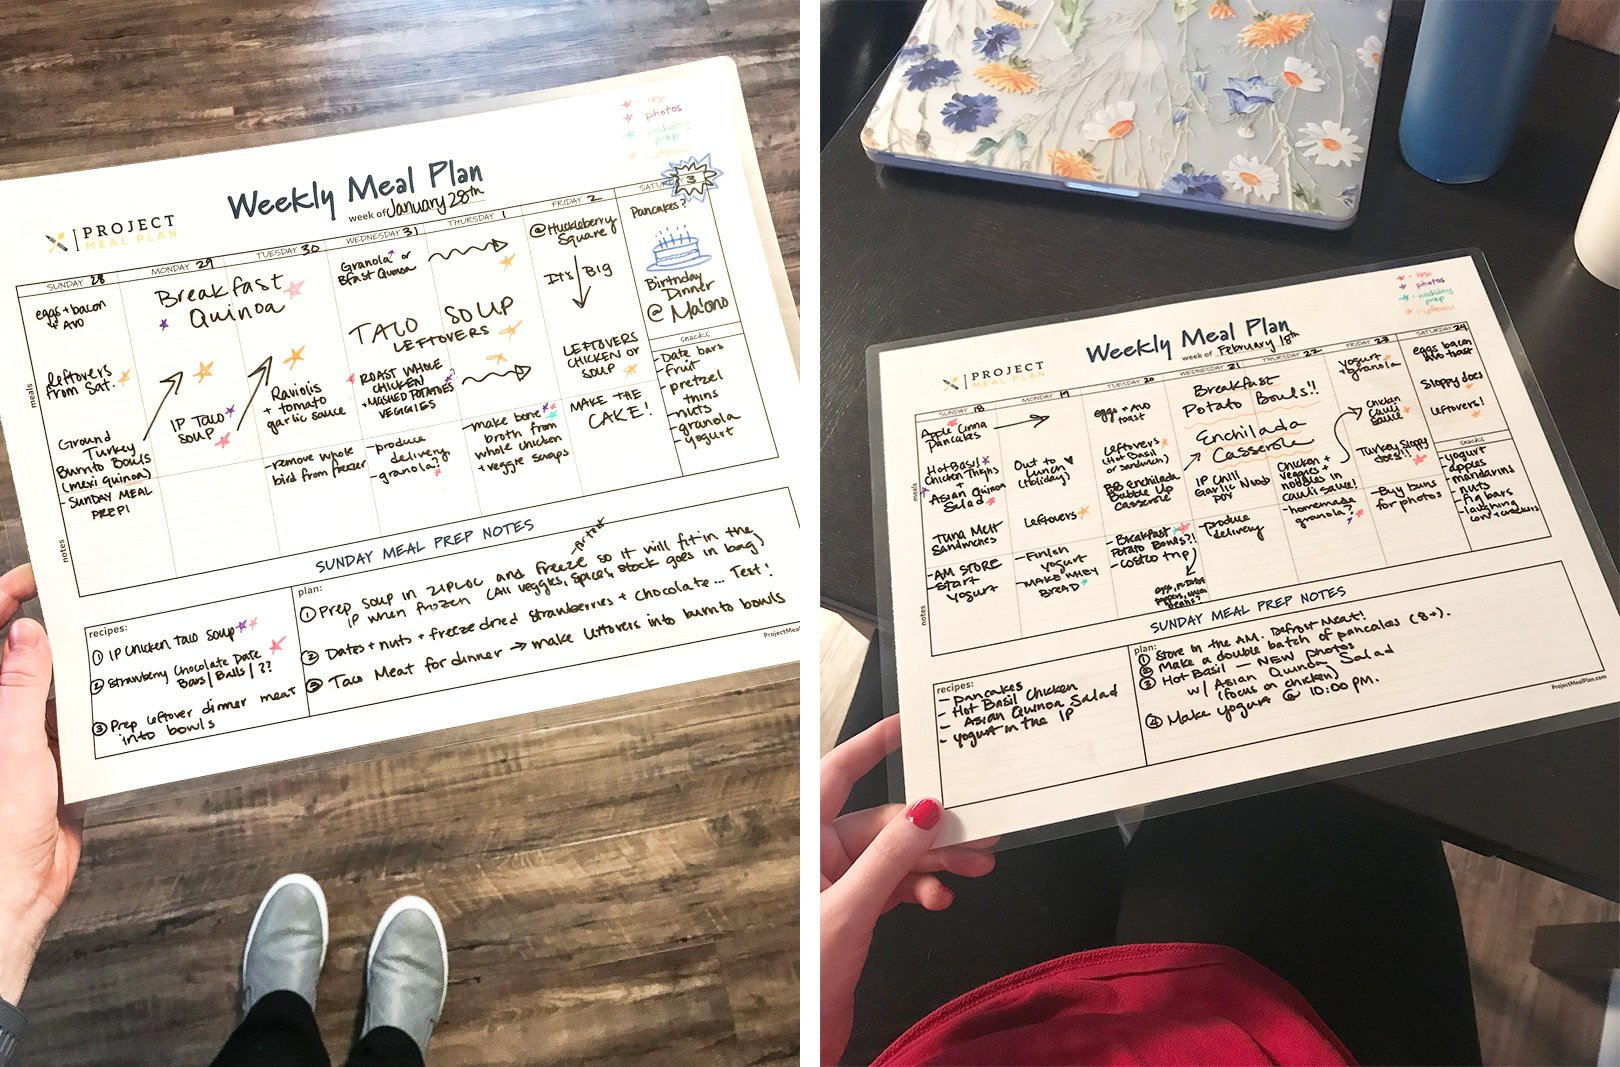 Examples of using the meal planner to plan the week's meals.